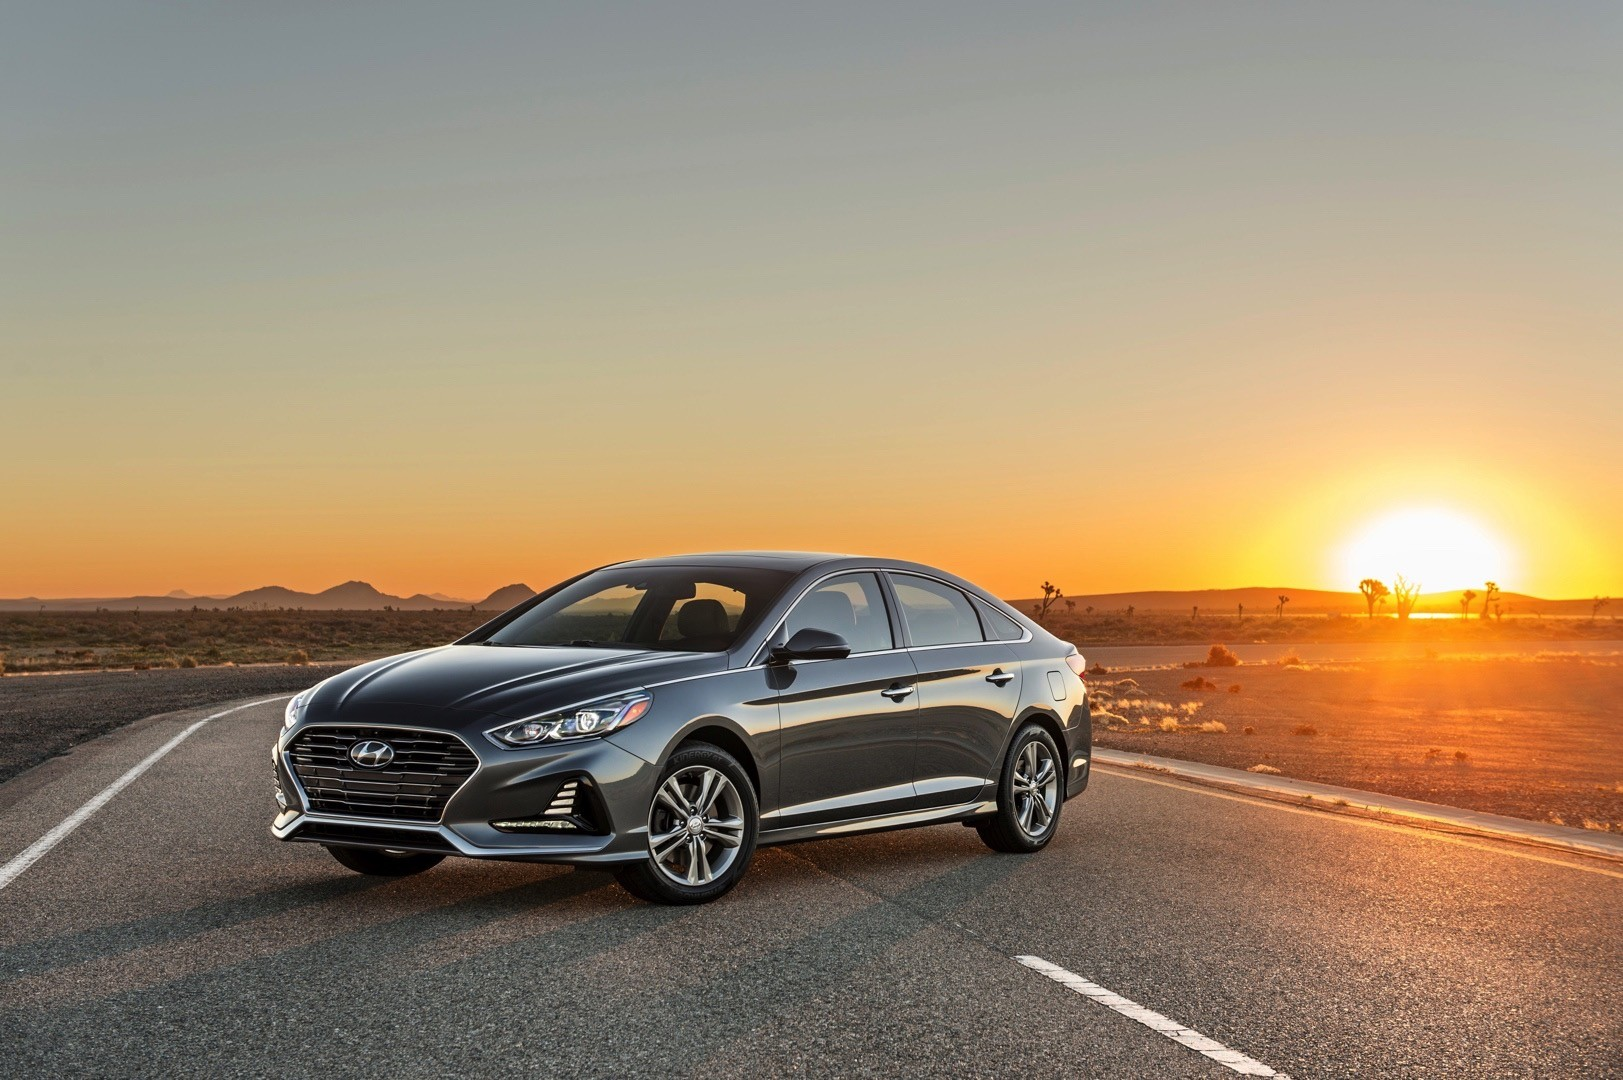 New Hyundai Sonata Hybrid Confirmed To Debut At 2018